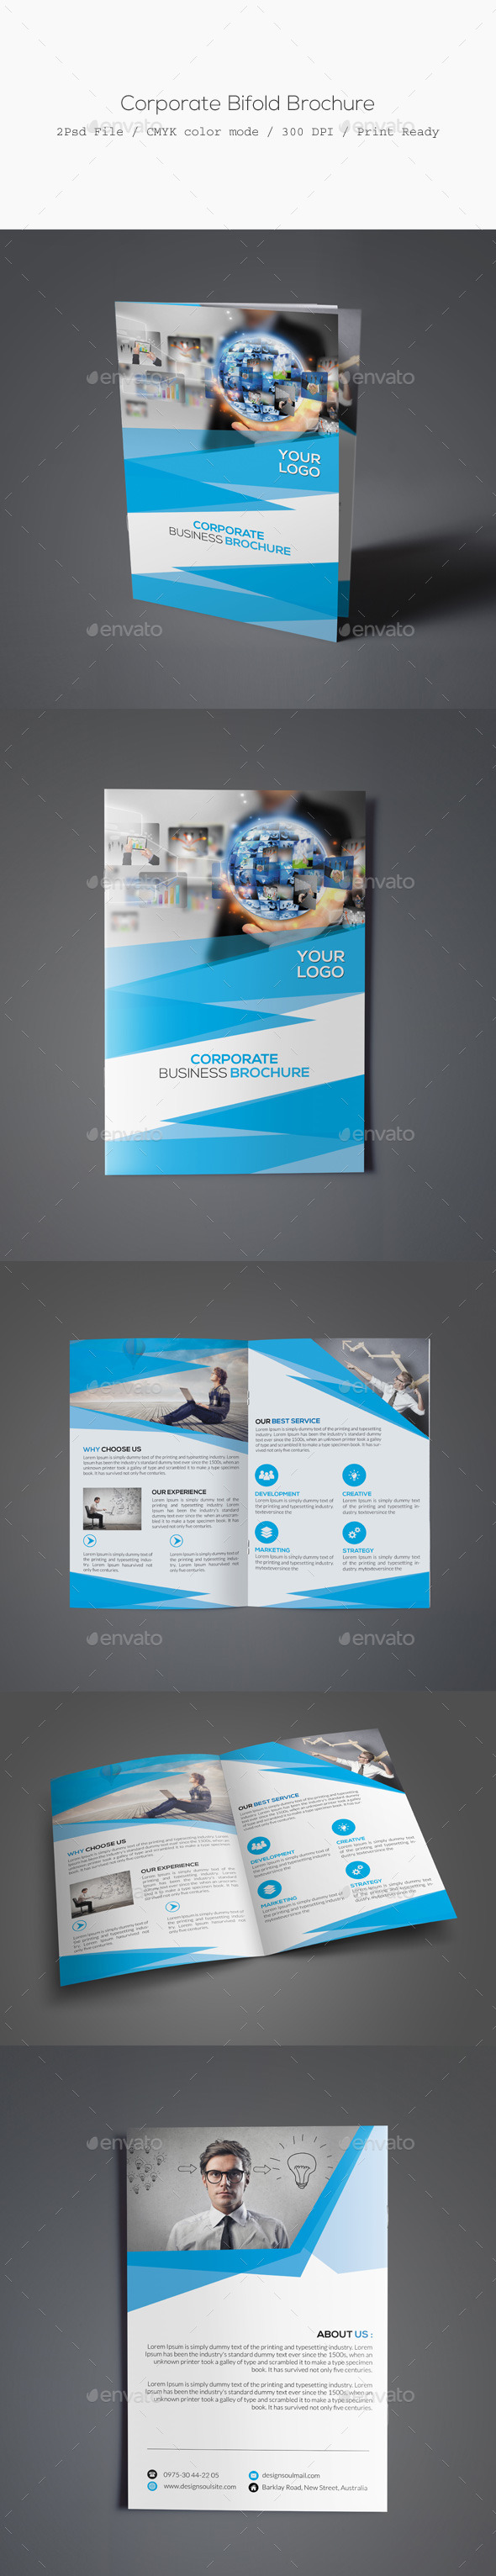 GraphicRiver Corporate Bifold Brochure 11630046